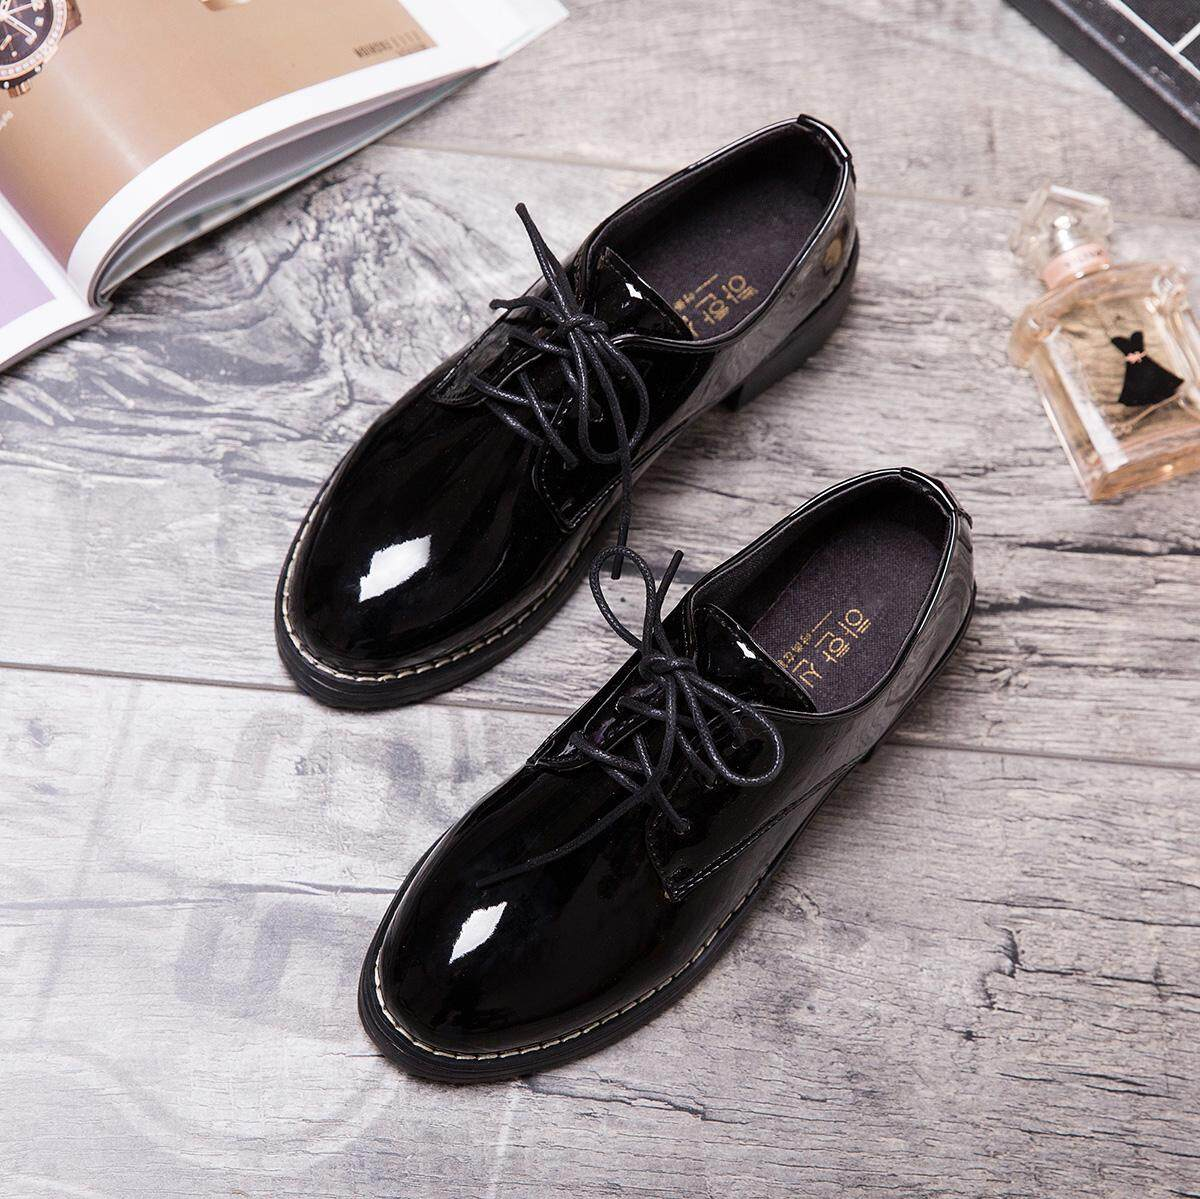 d33a65cb2ca Black Small Leather Shoes women 2019 New Style Spring Versatile Korean  Style Students Harajuku England women Shoes Flat Keel Thin Shoes Fashion